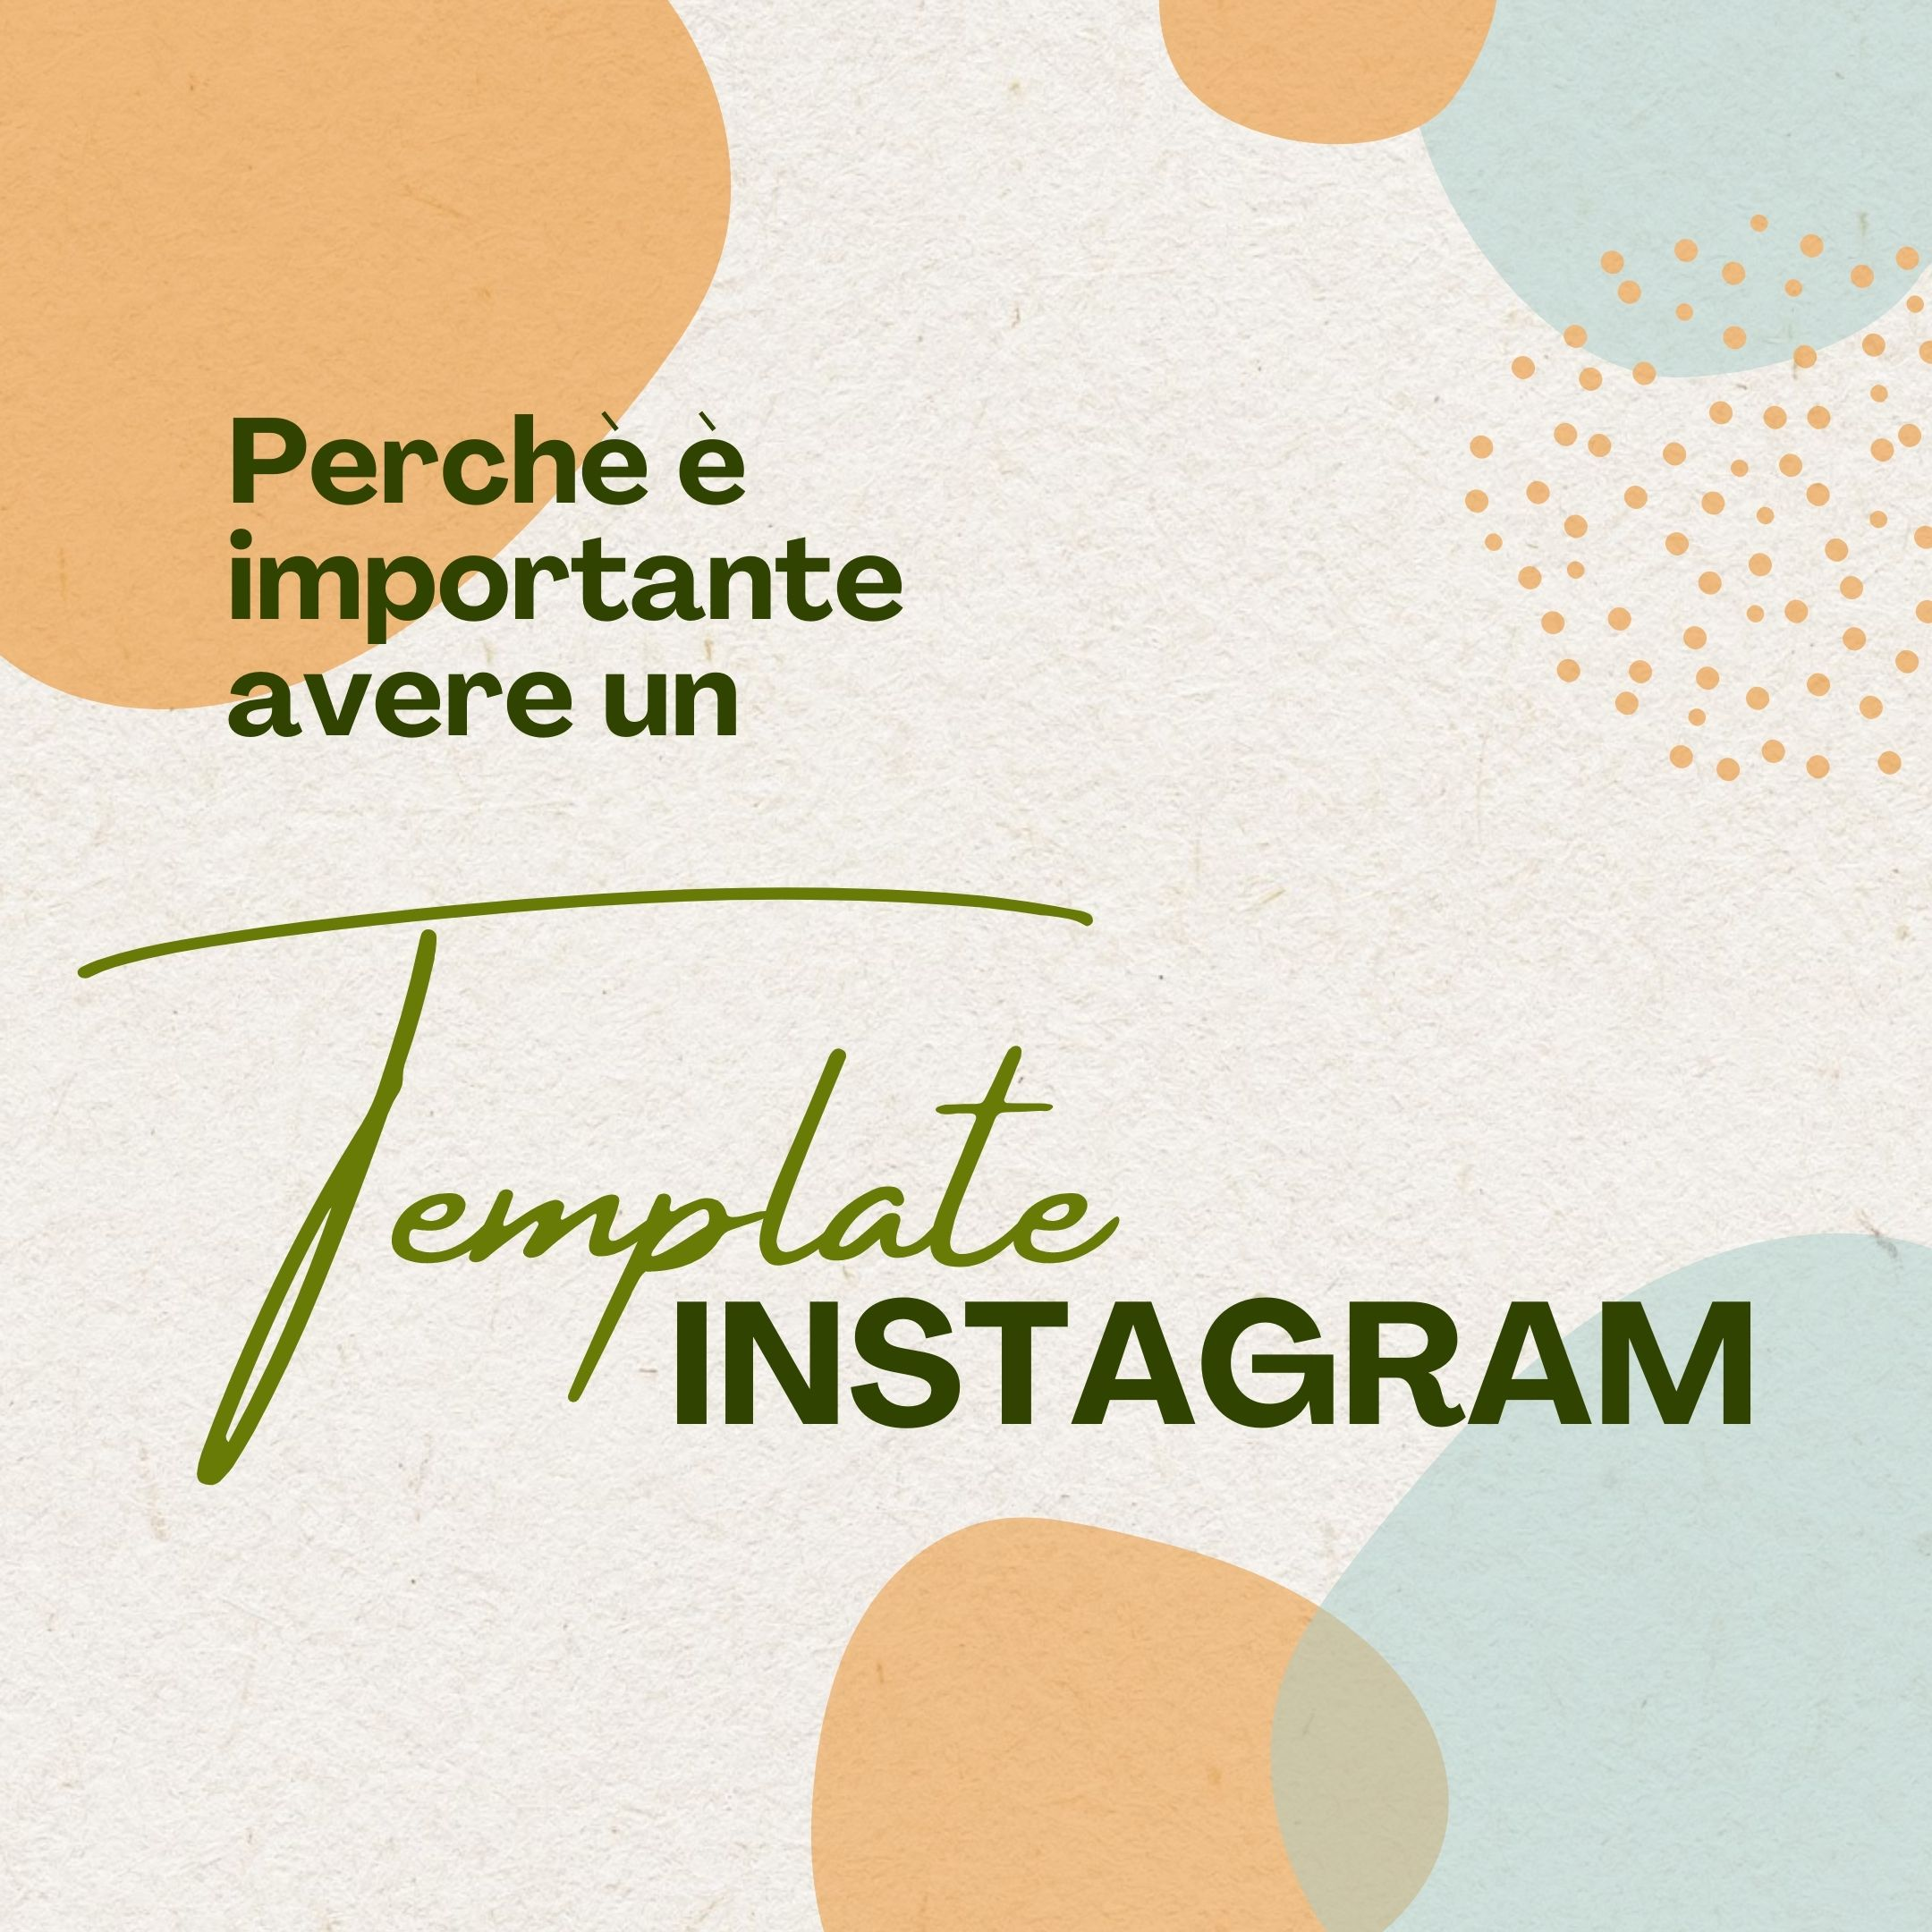 Template Instagram